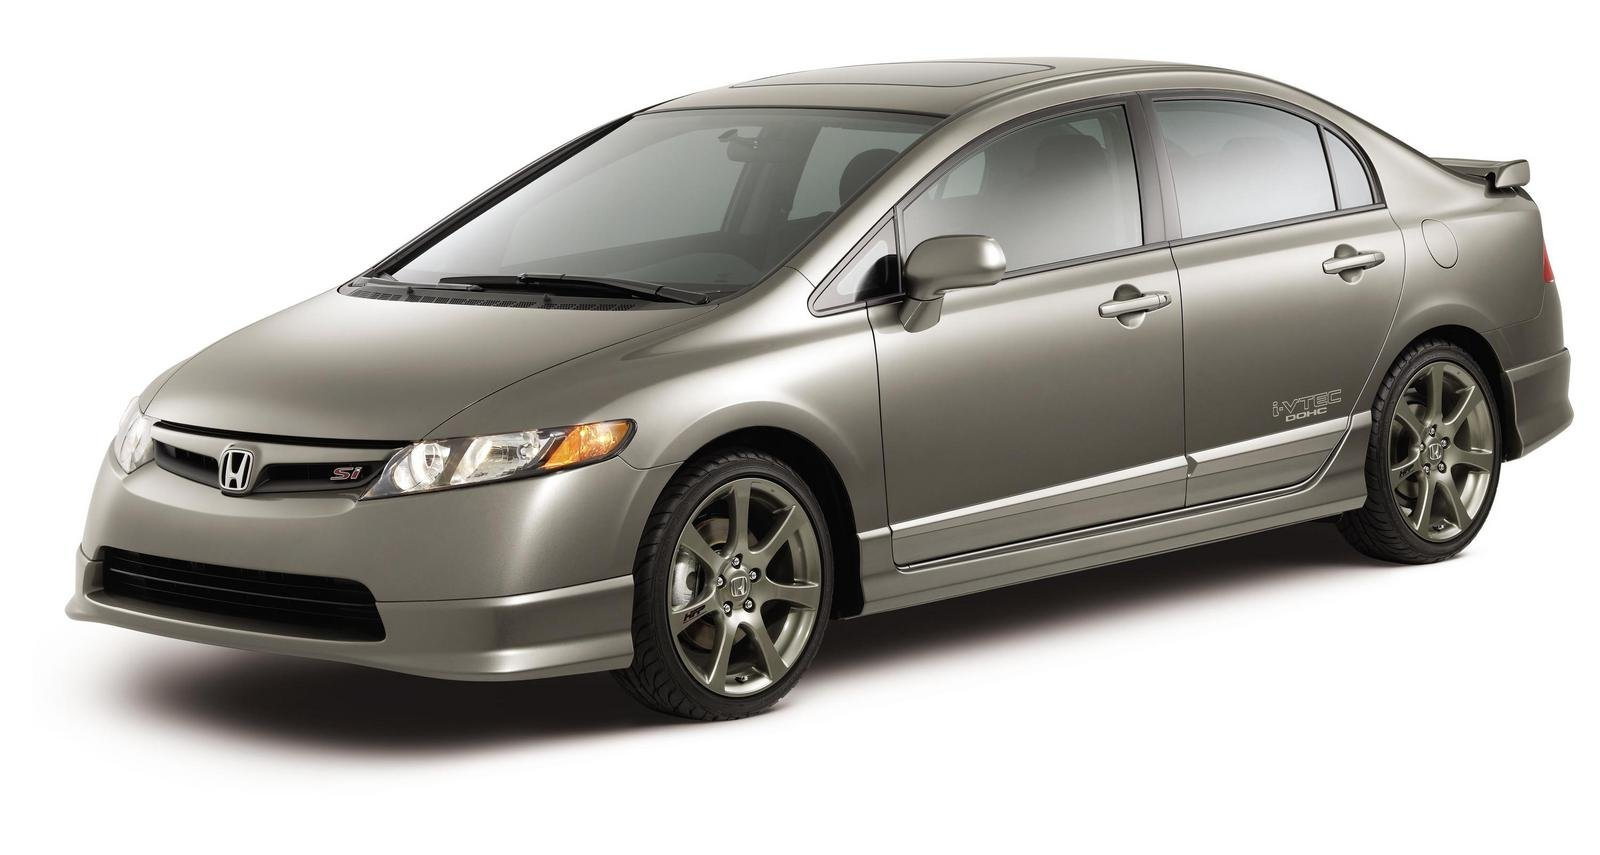 2007 honda factory performance civic si sedan review top. Black Bedroom Furniture Sets. Home Design Ideas